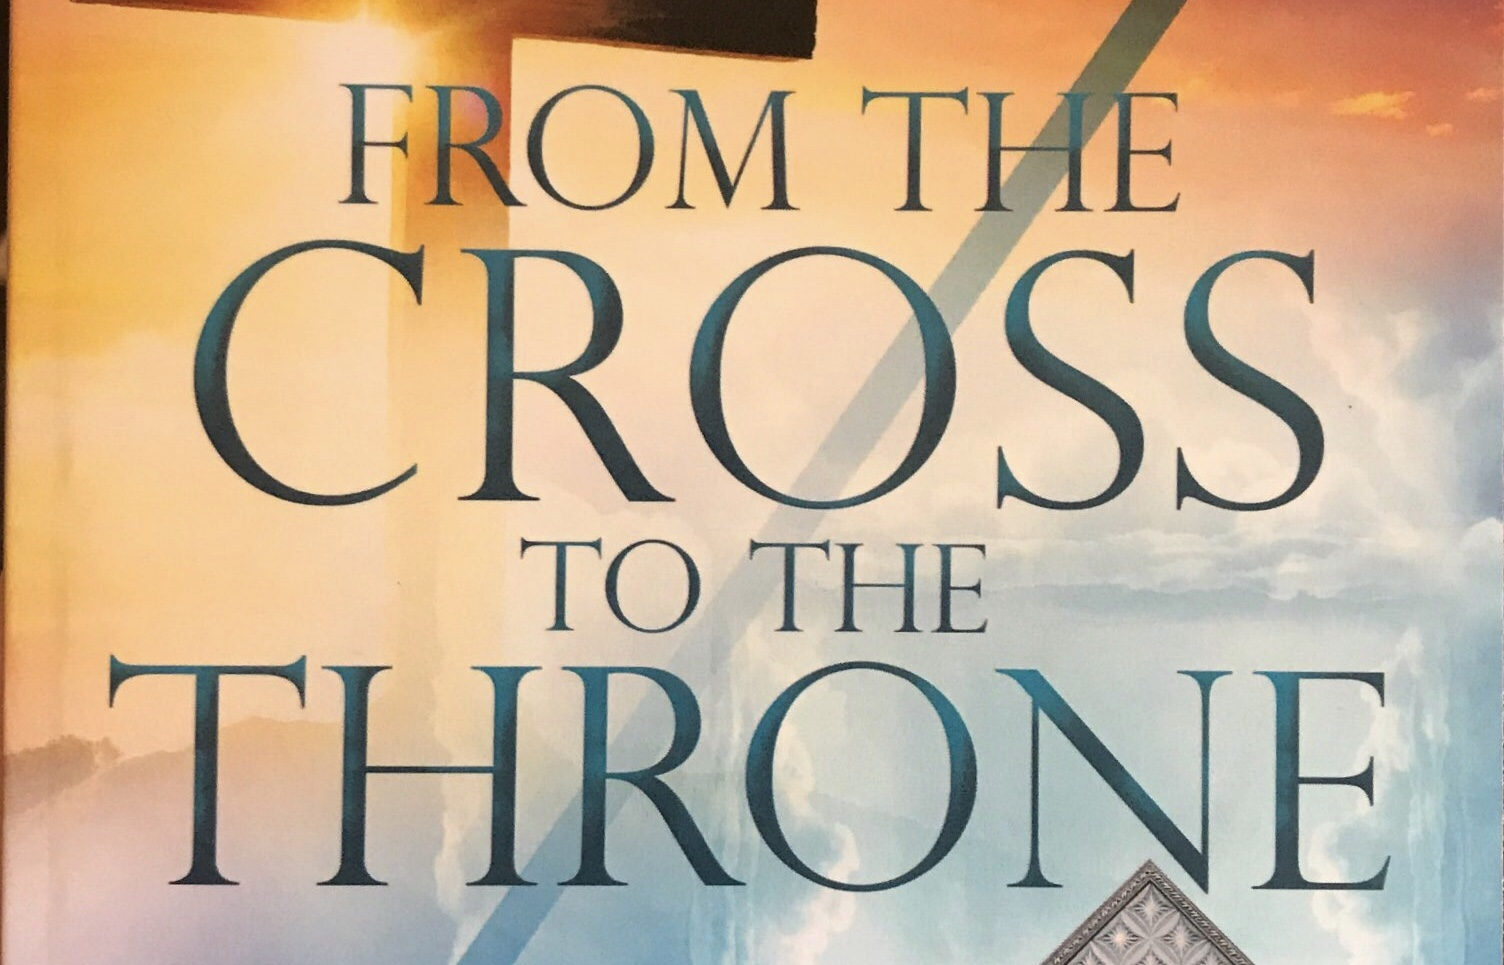 Trussville man publishes book, 'From The Cross To The Throne'